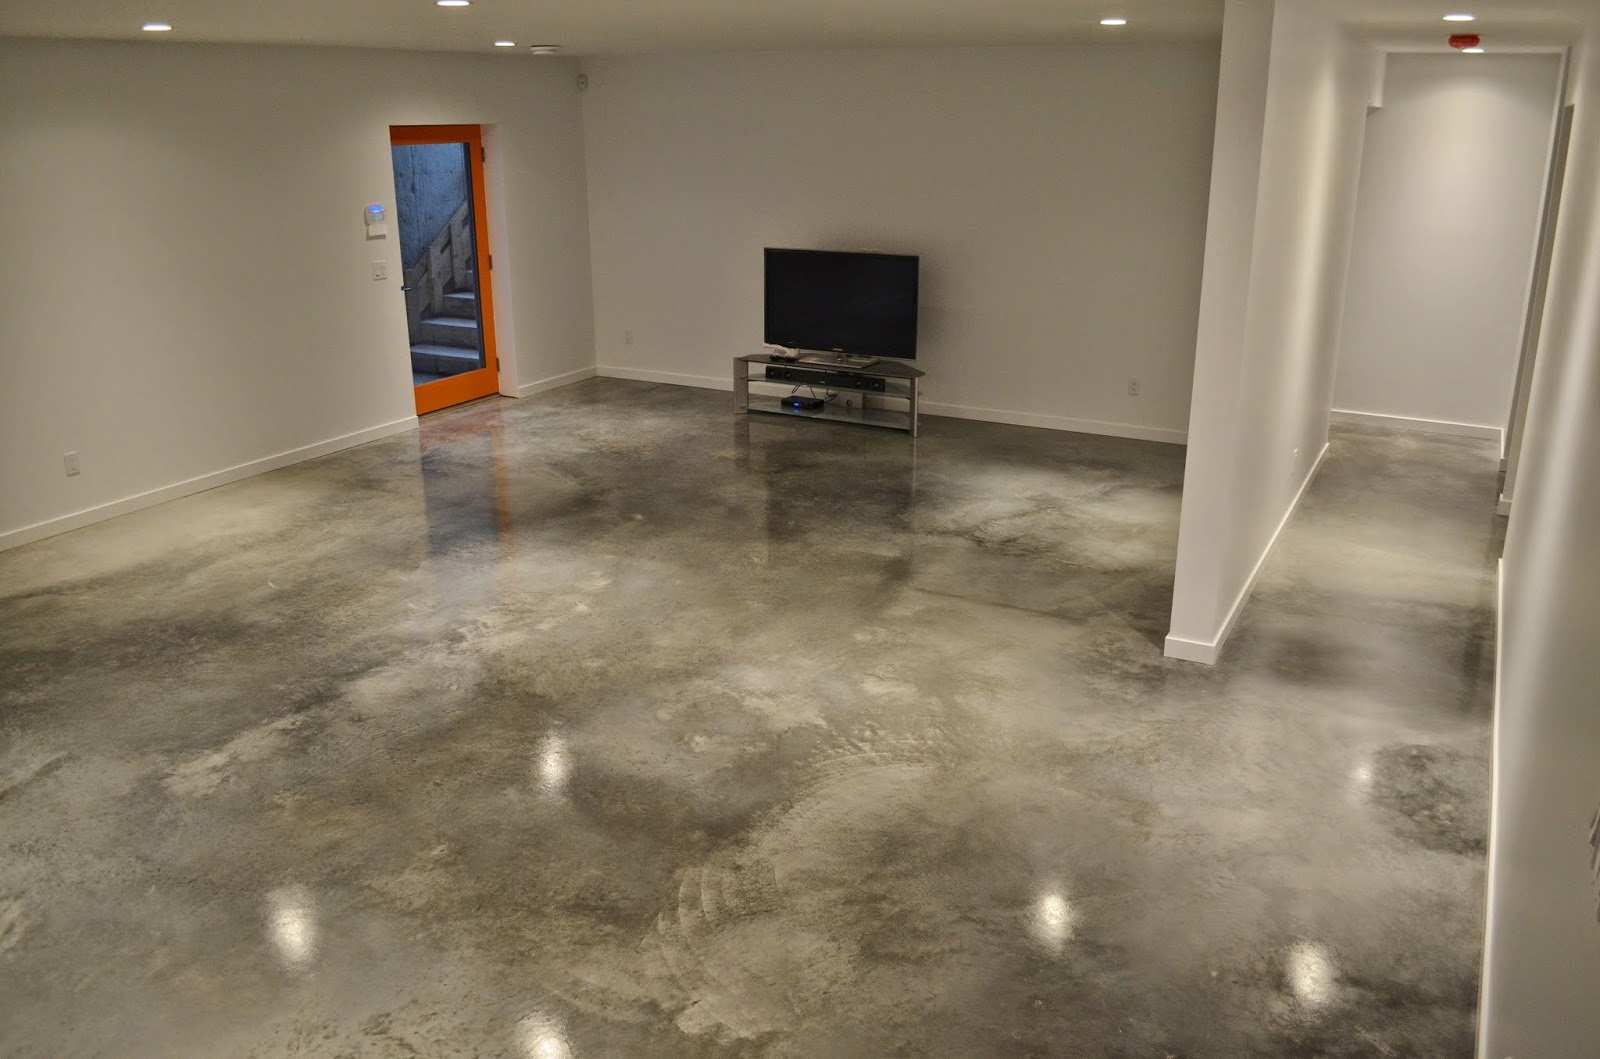 Mode concrete cool and modern concrete floors by mode for Concrete floors in house